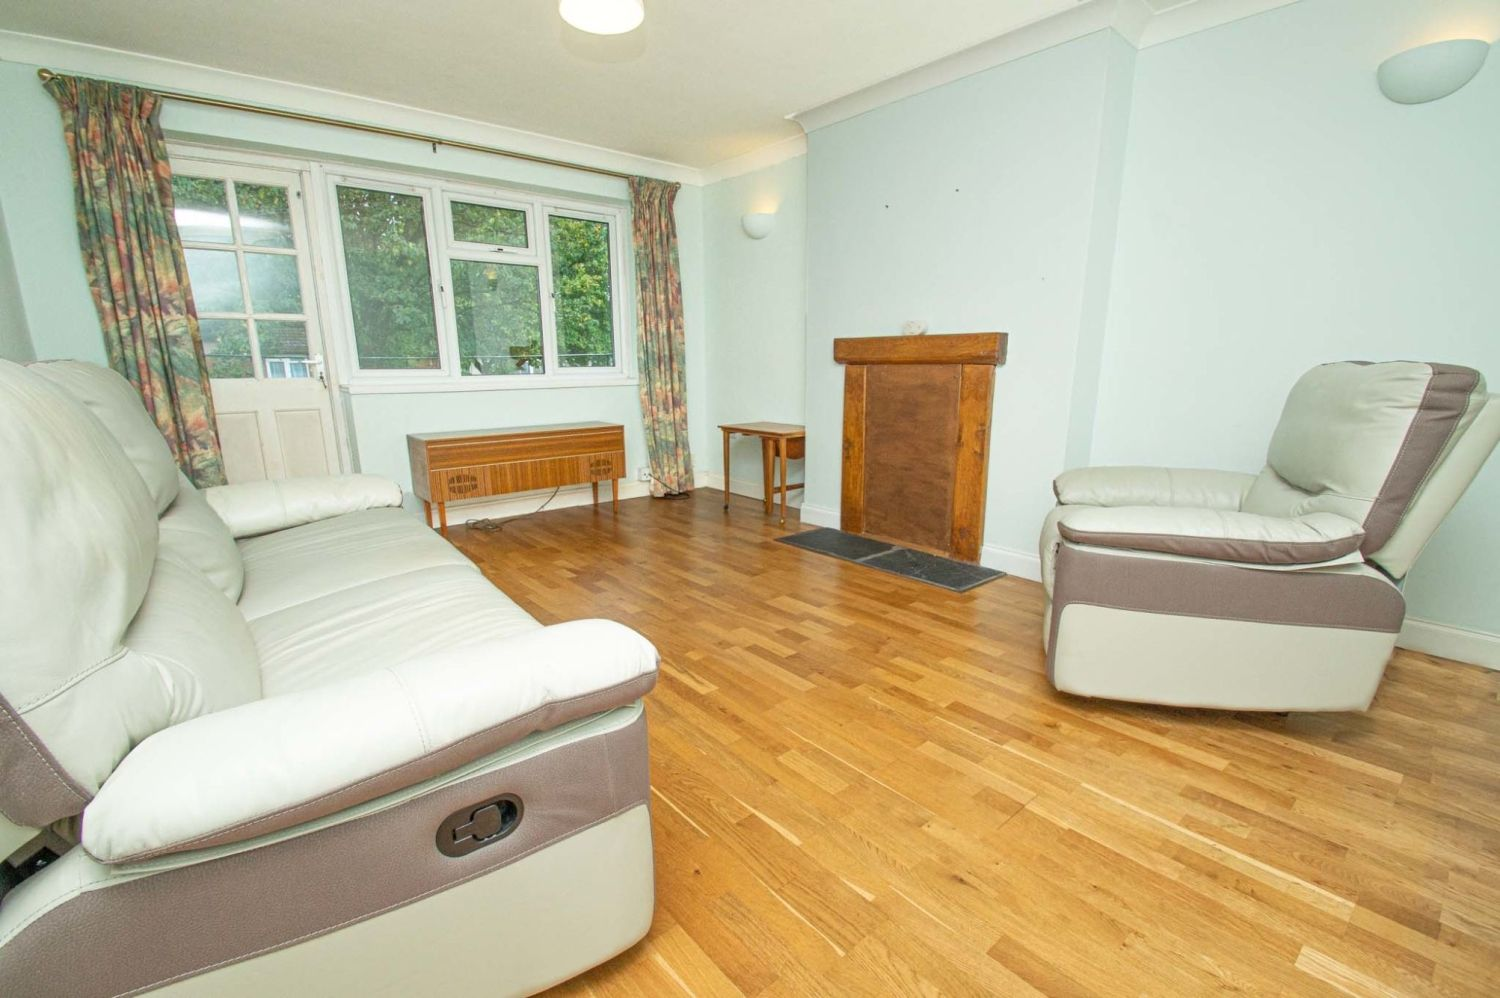 2 bed flat for sale in Malvern Avenue, Stourbridge 2